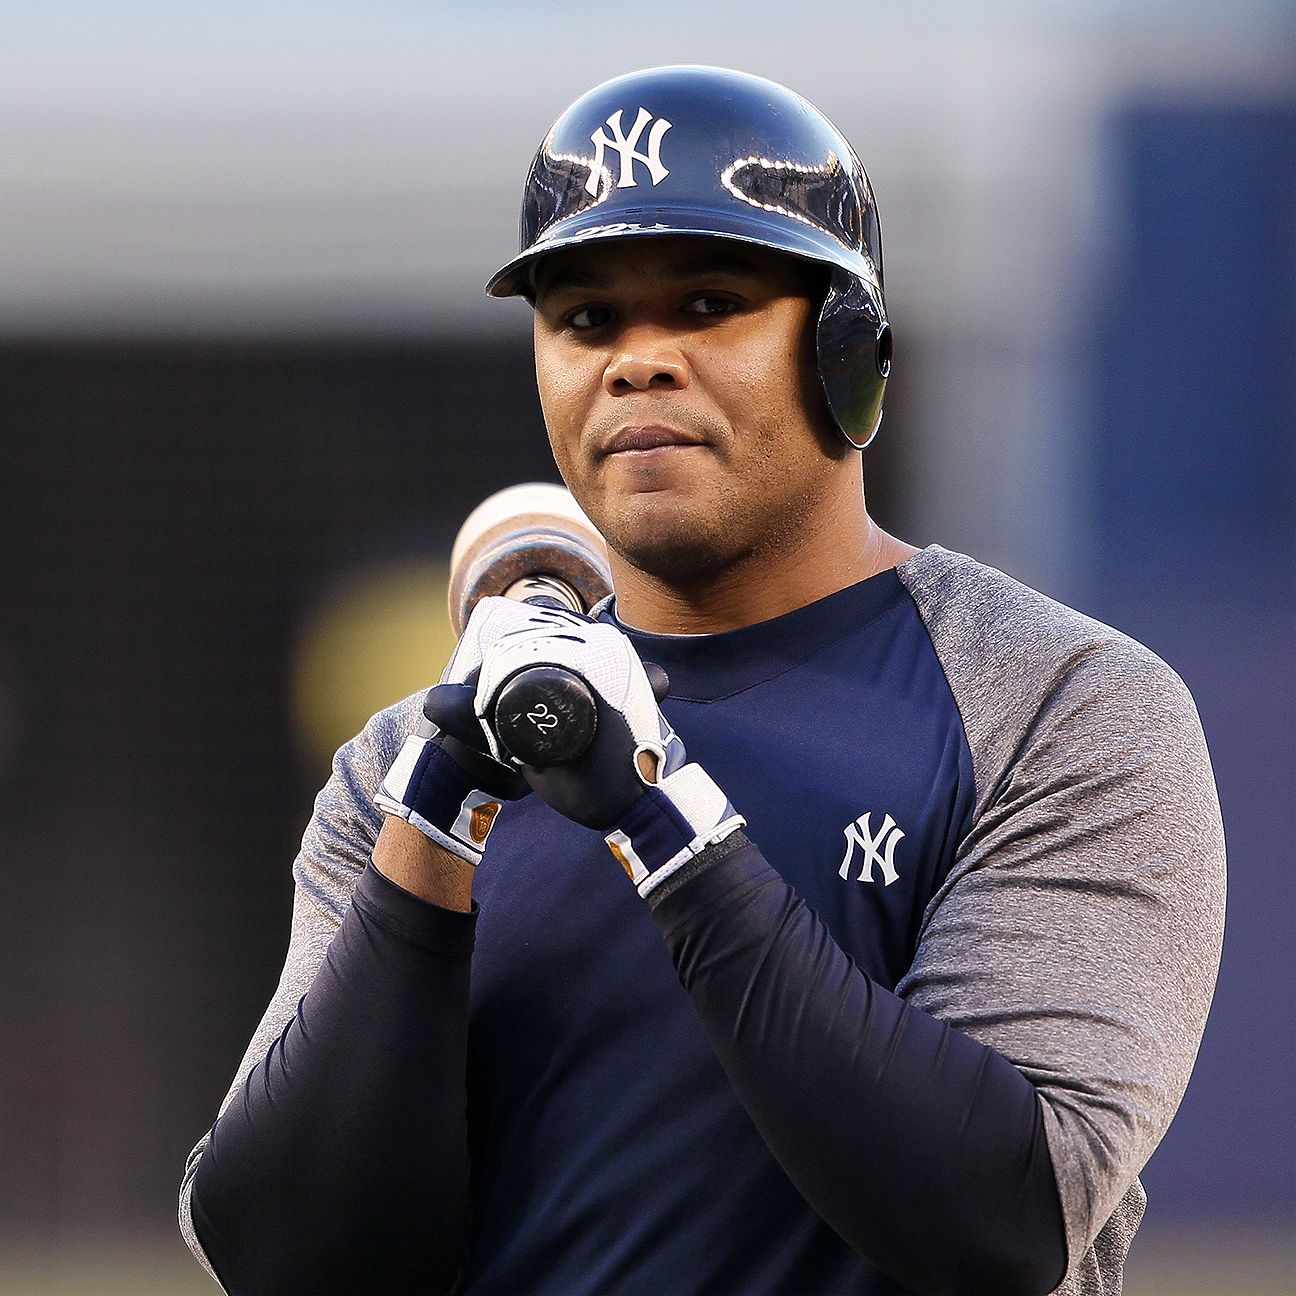 Andruw Jones looking to return to MLB after two years in Japan